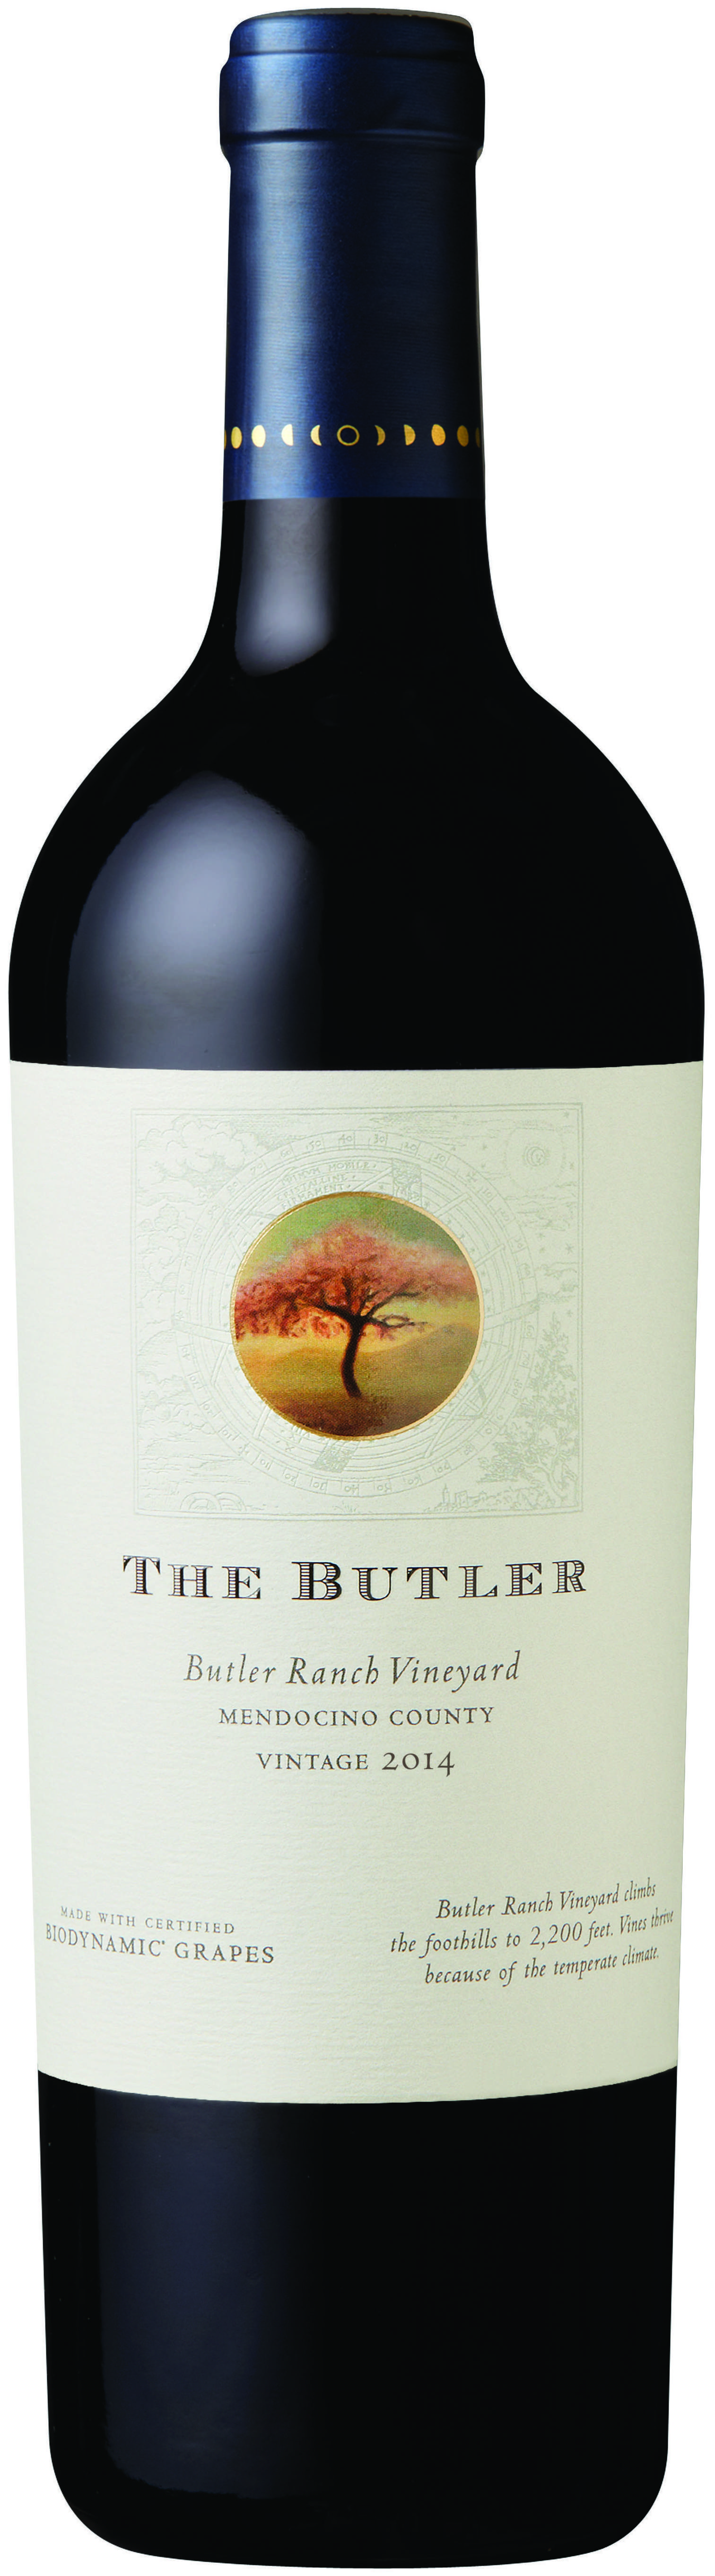 2014 Bonterra Vintage The Butler Bottle